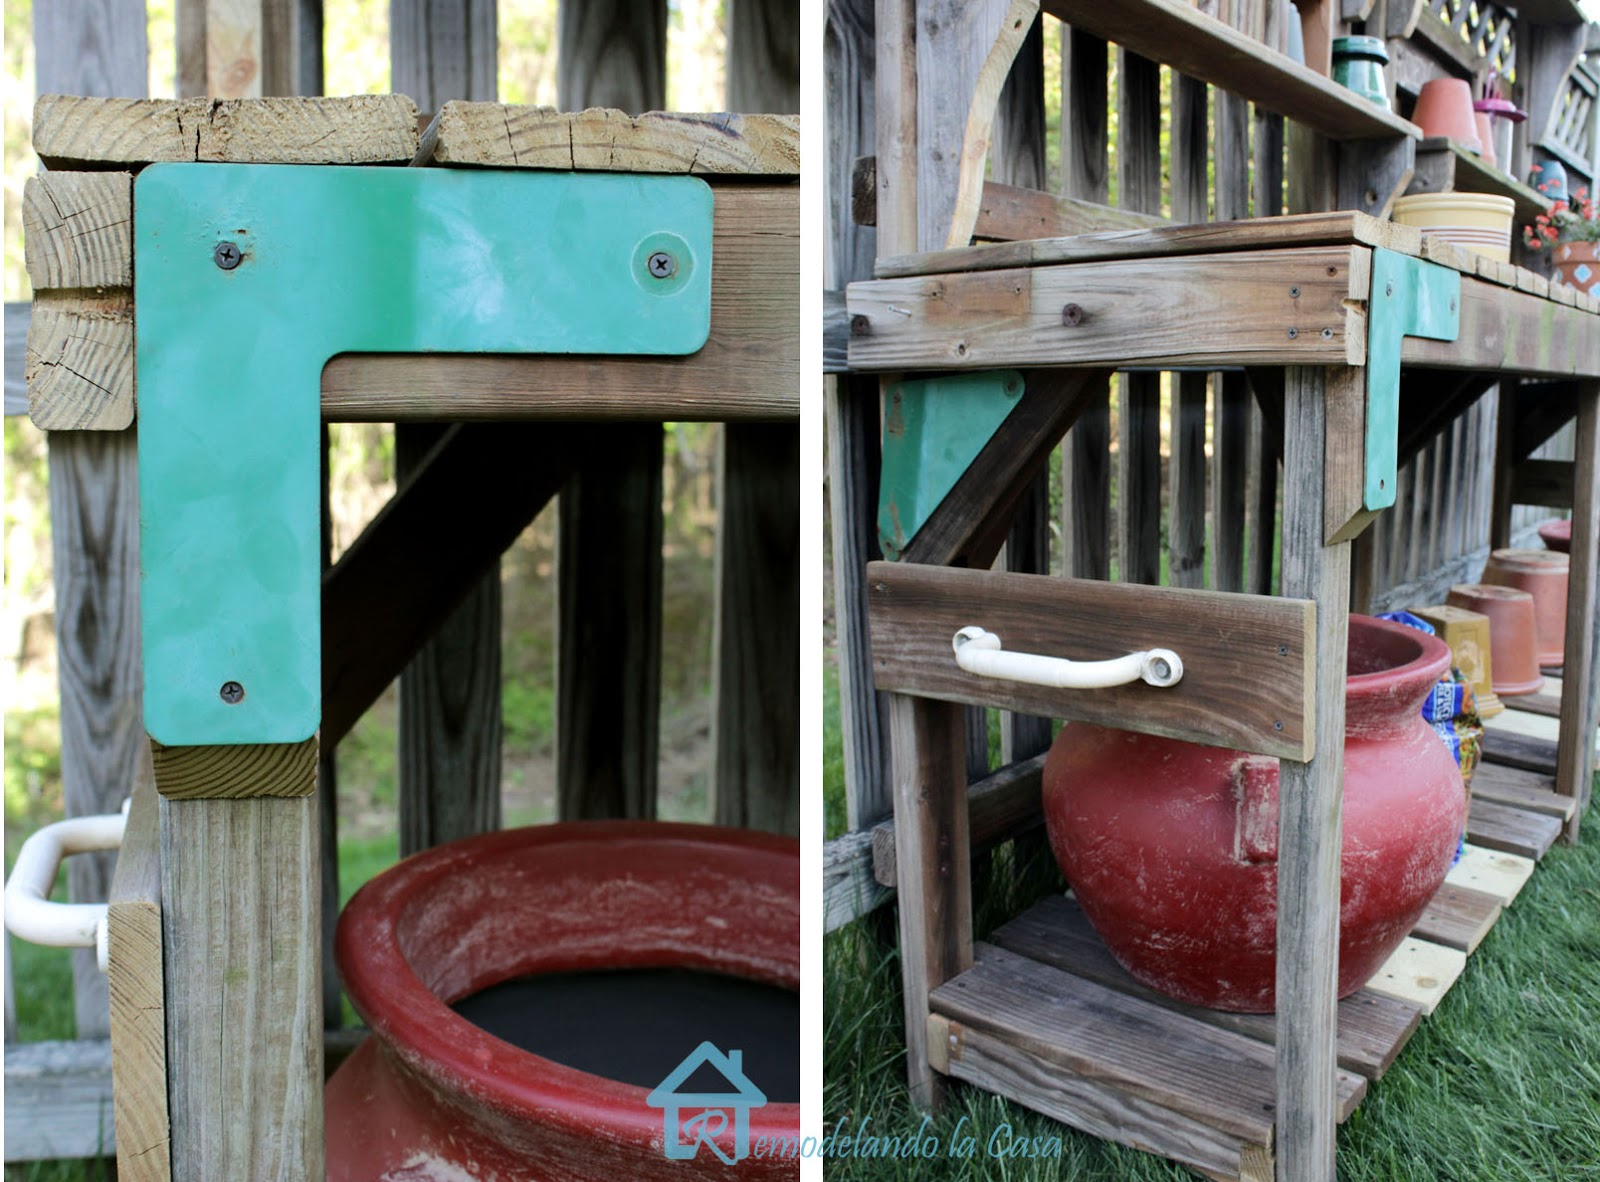 metal parts of a playset used as decor on potting bench